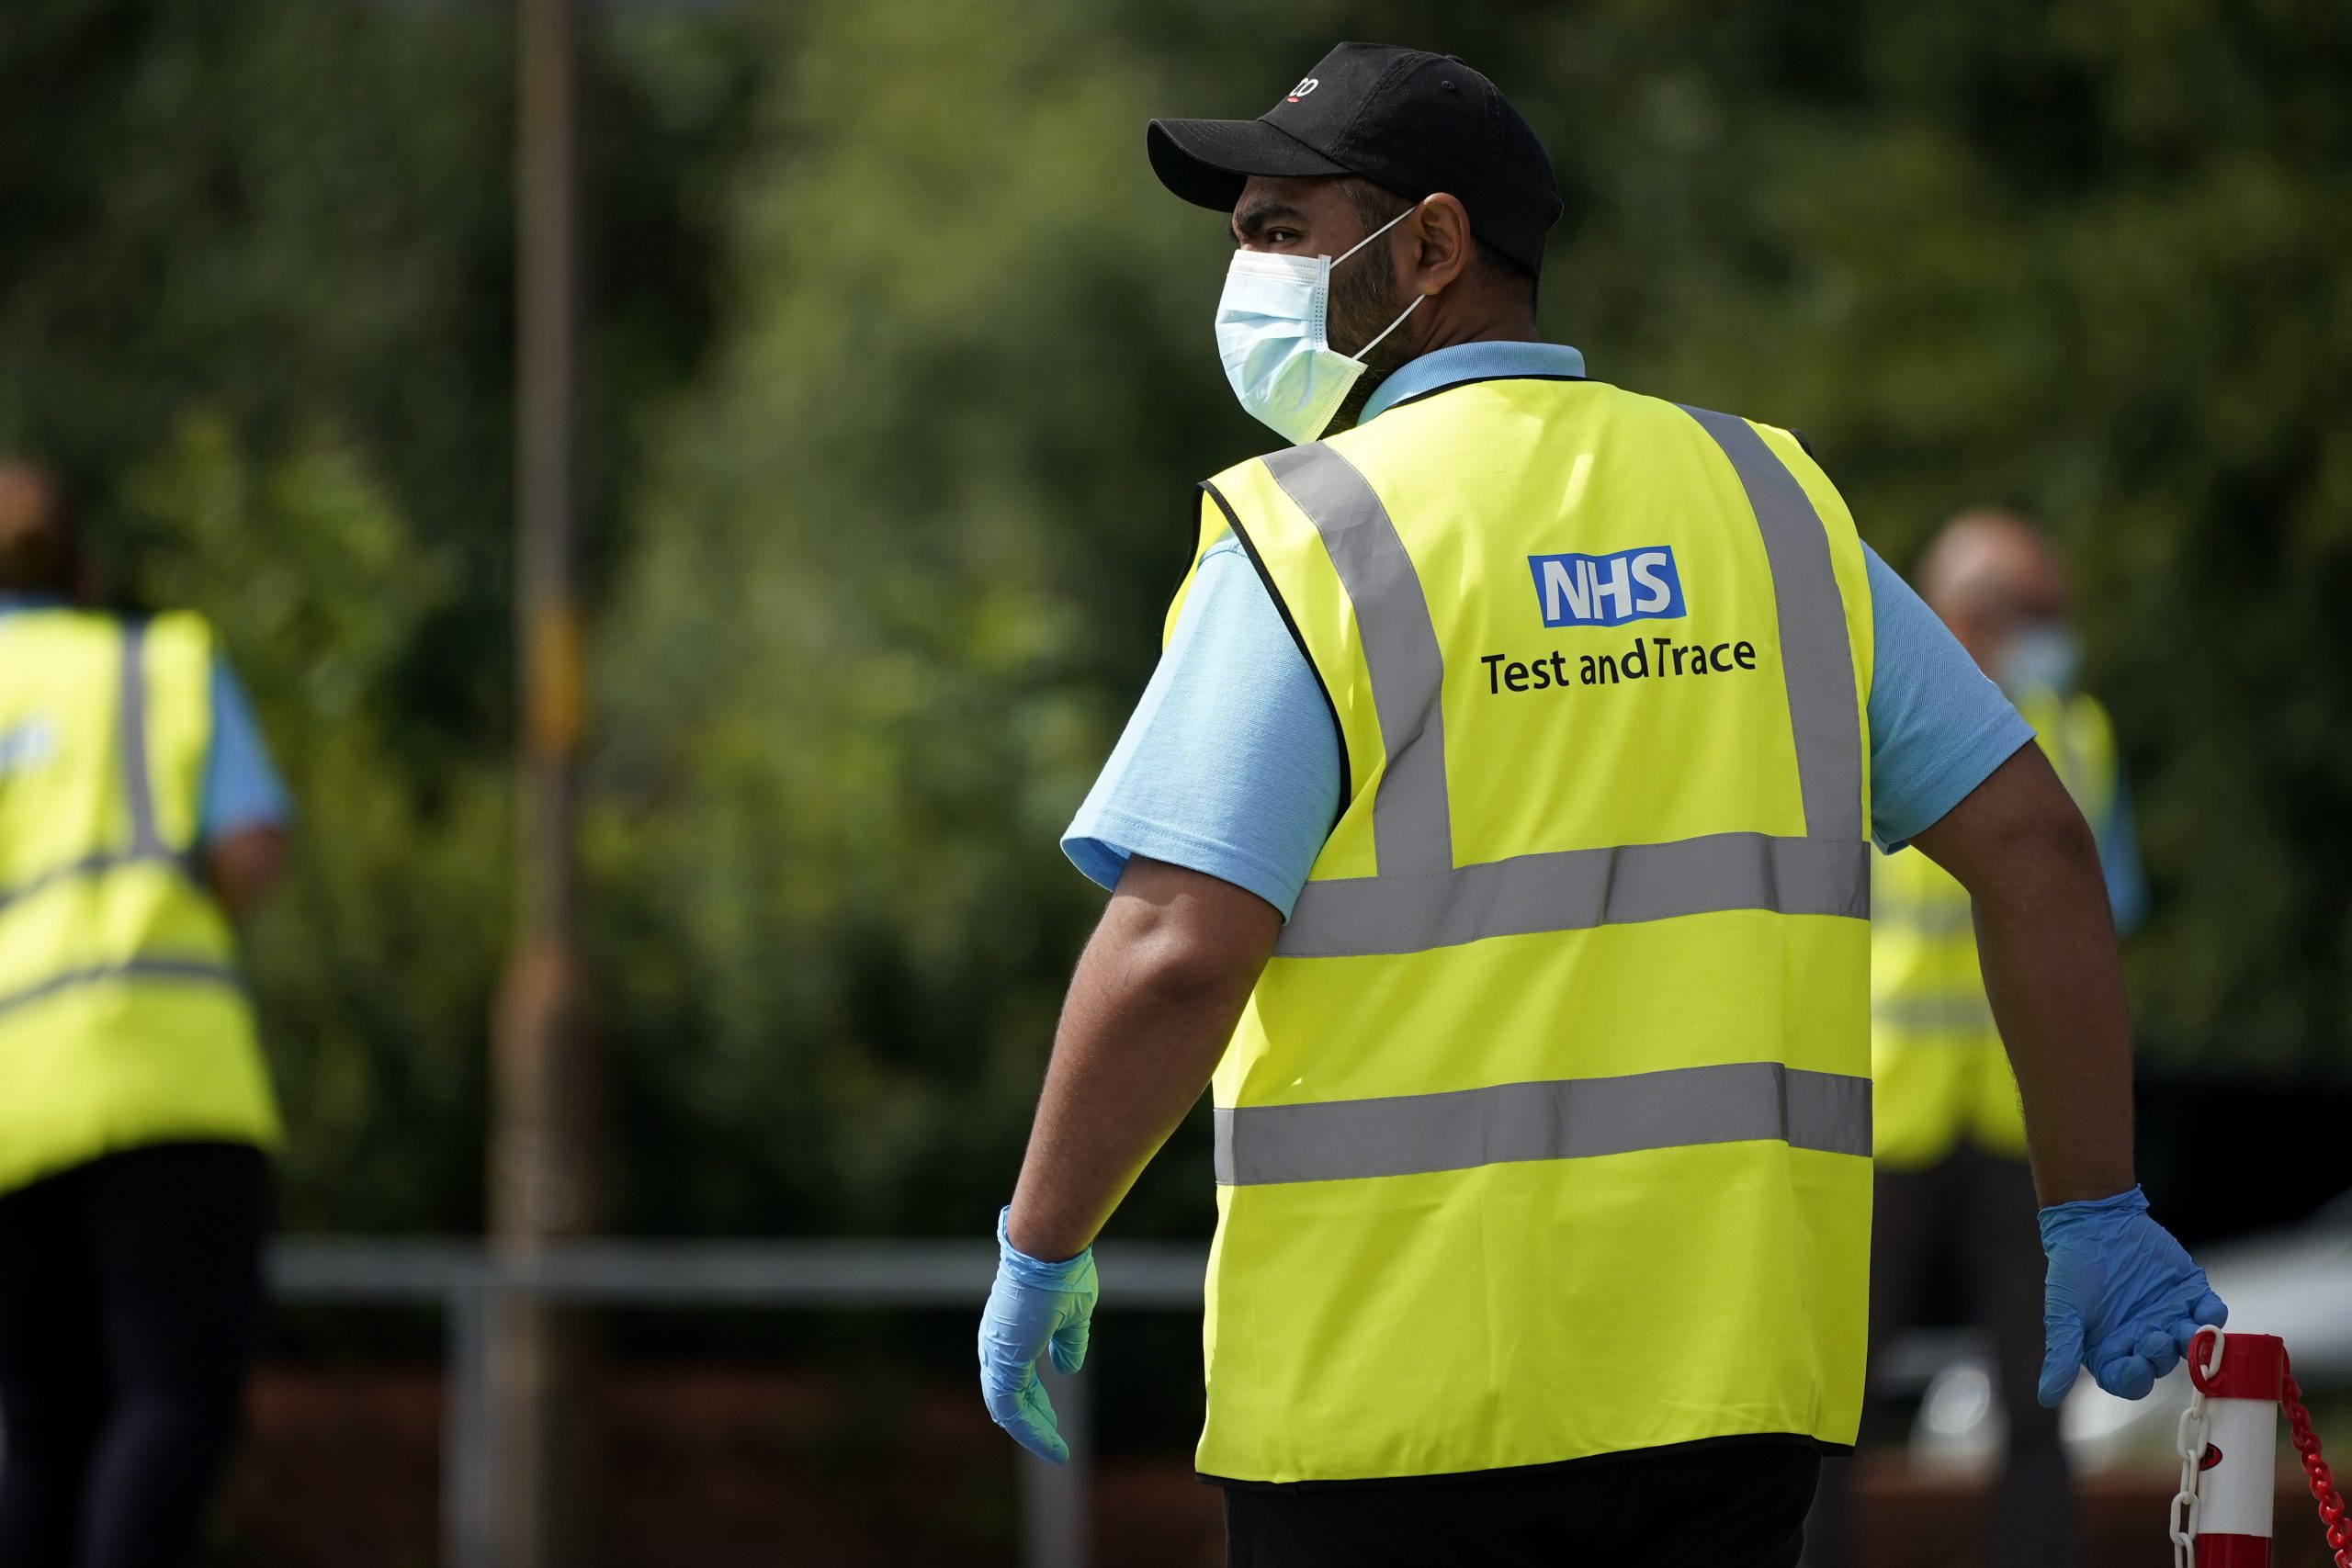 United Kingdom trials quarantine payment scheme for workers on low income